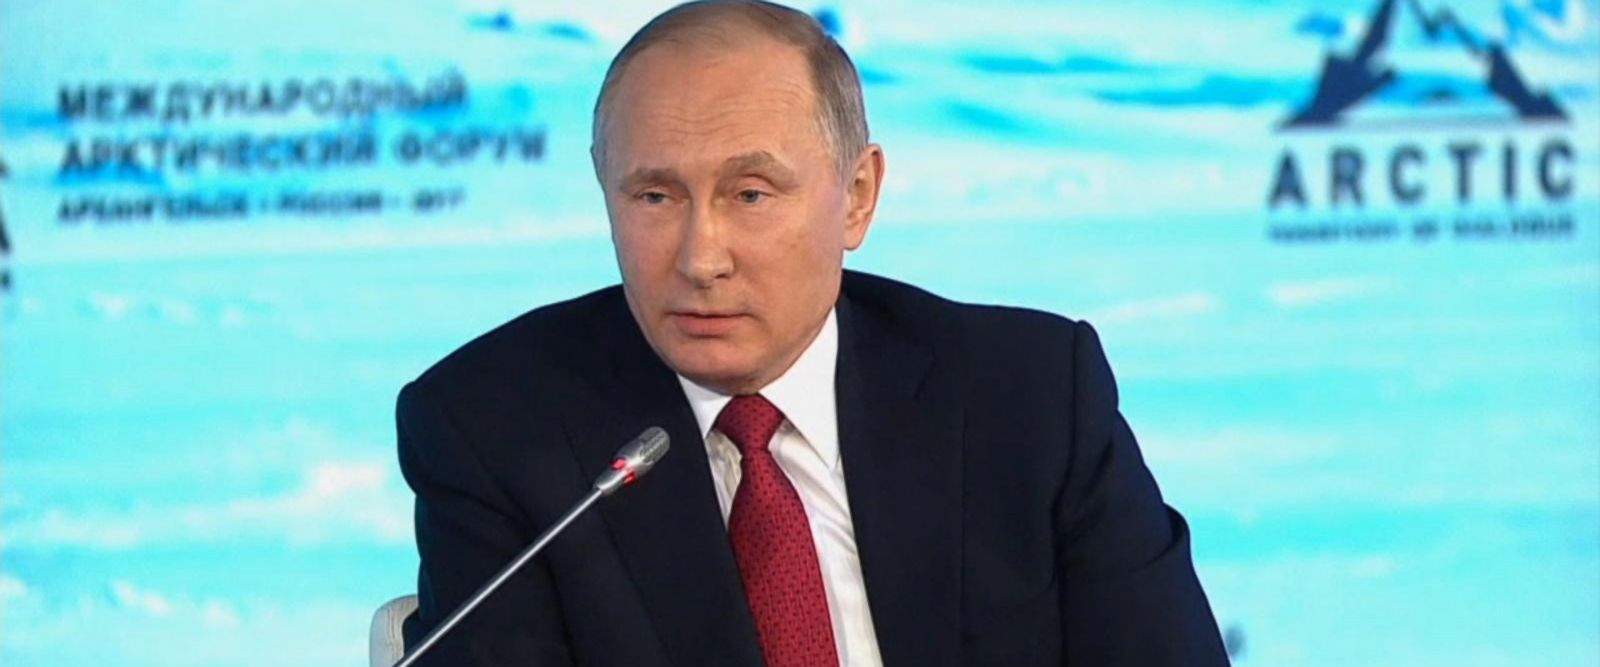 VIDEO: Putin rejects accusations that Russia interfered with US election